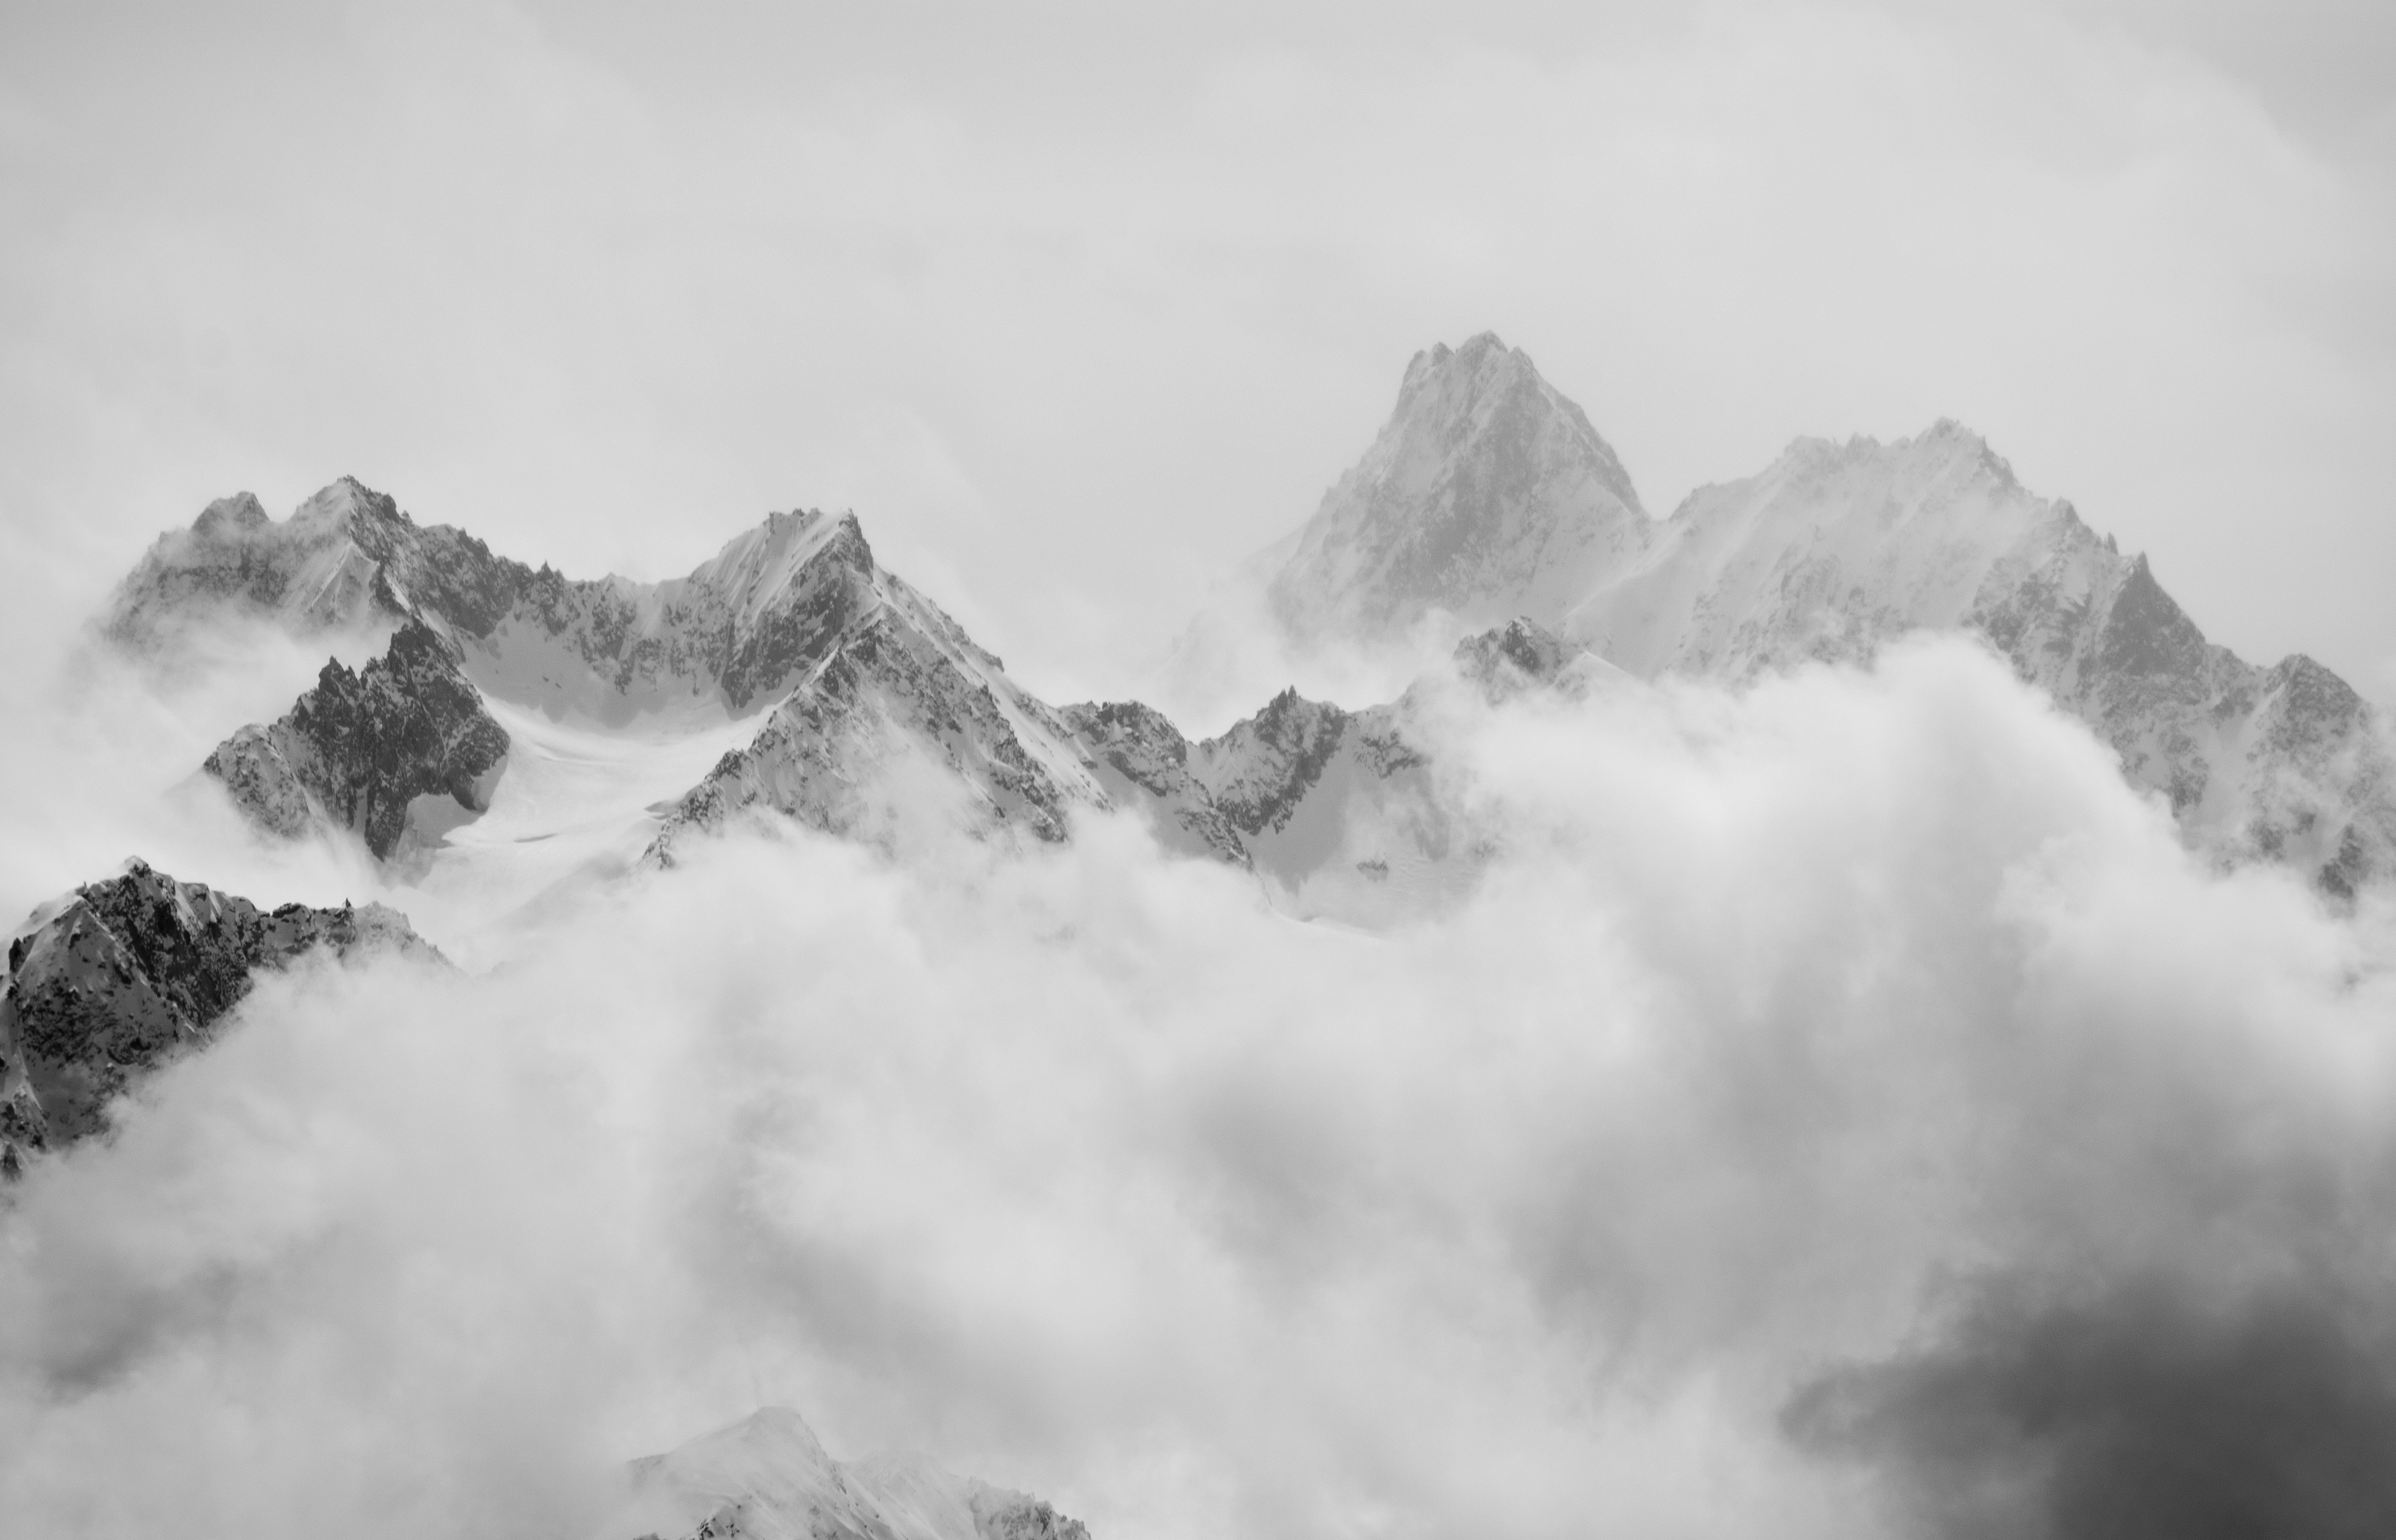 Atmospheric clouds linger around the peaks of the Swiss alps after a spring snow storm.